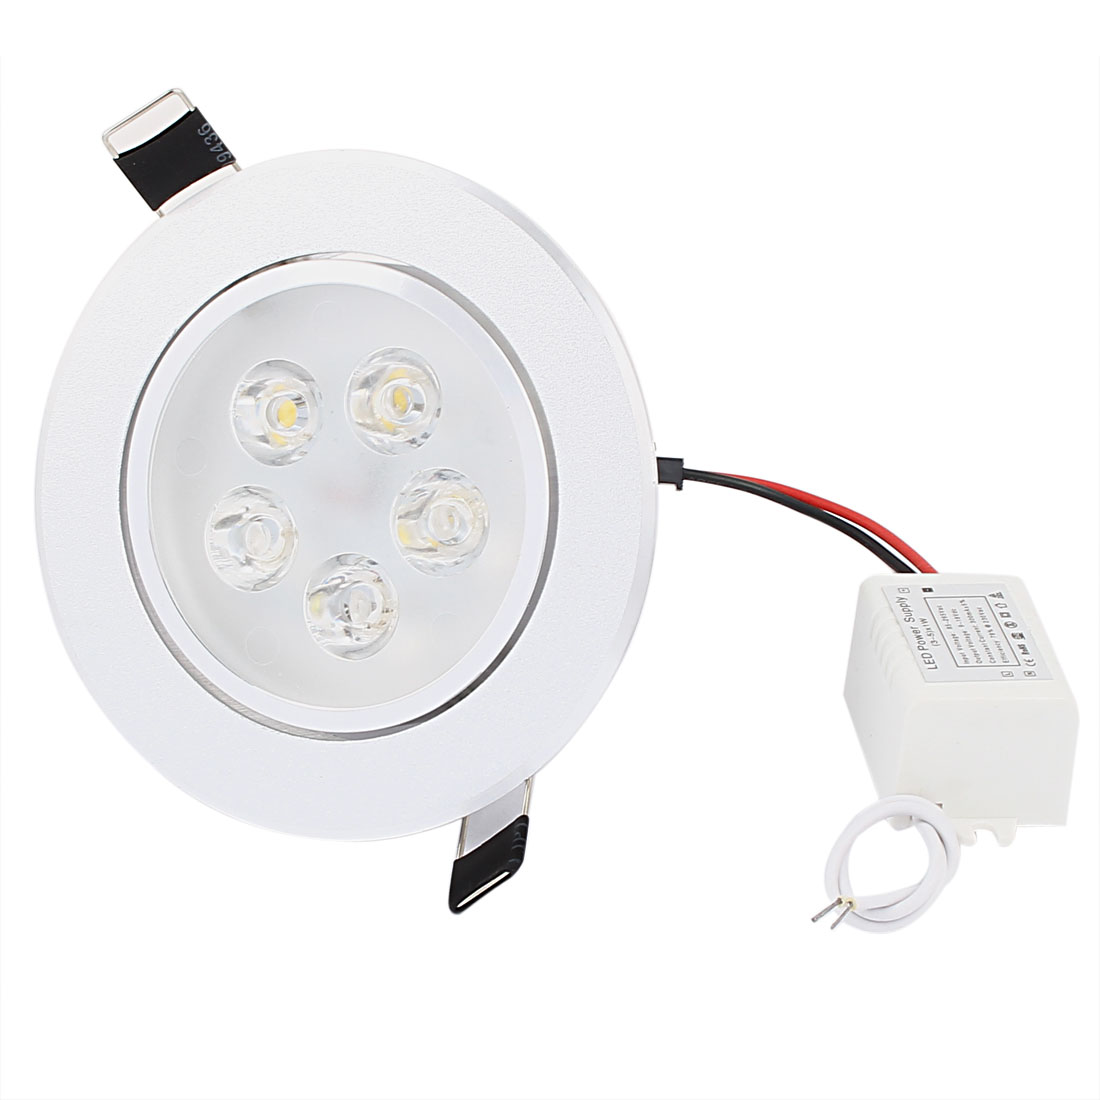 Silver Tone Aluminium Heatsink Round Warm White 5 LED Ceiling Down Recessed Lamp Light Downlight 5W AC 85-265V 300mA